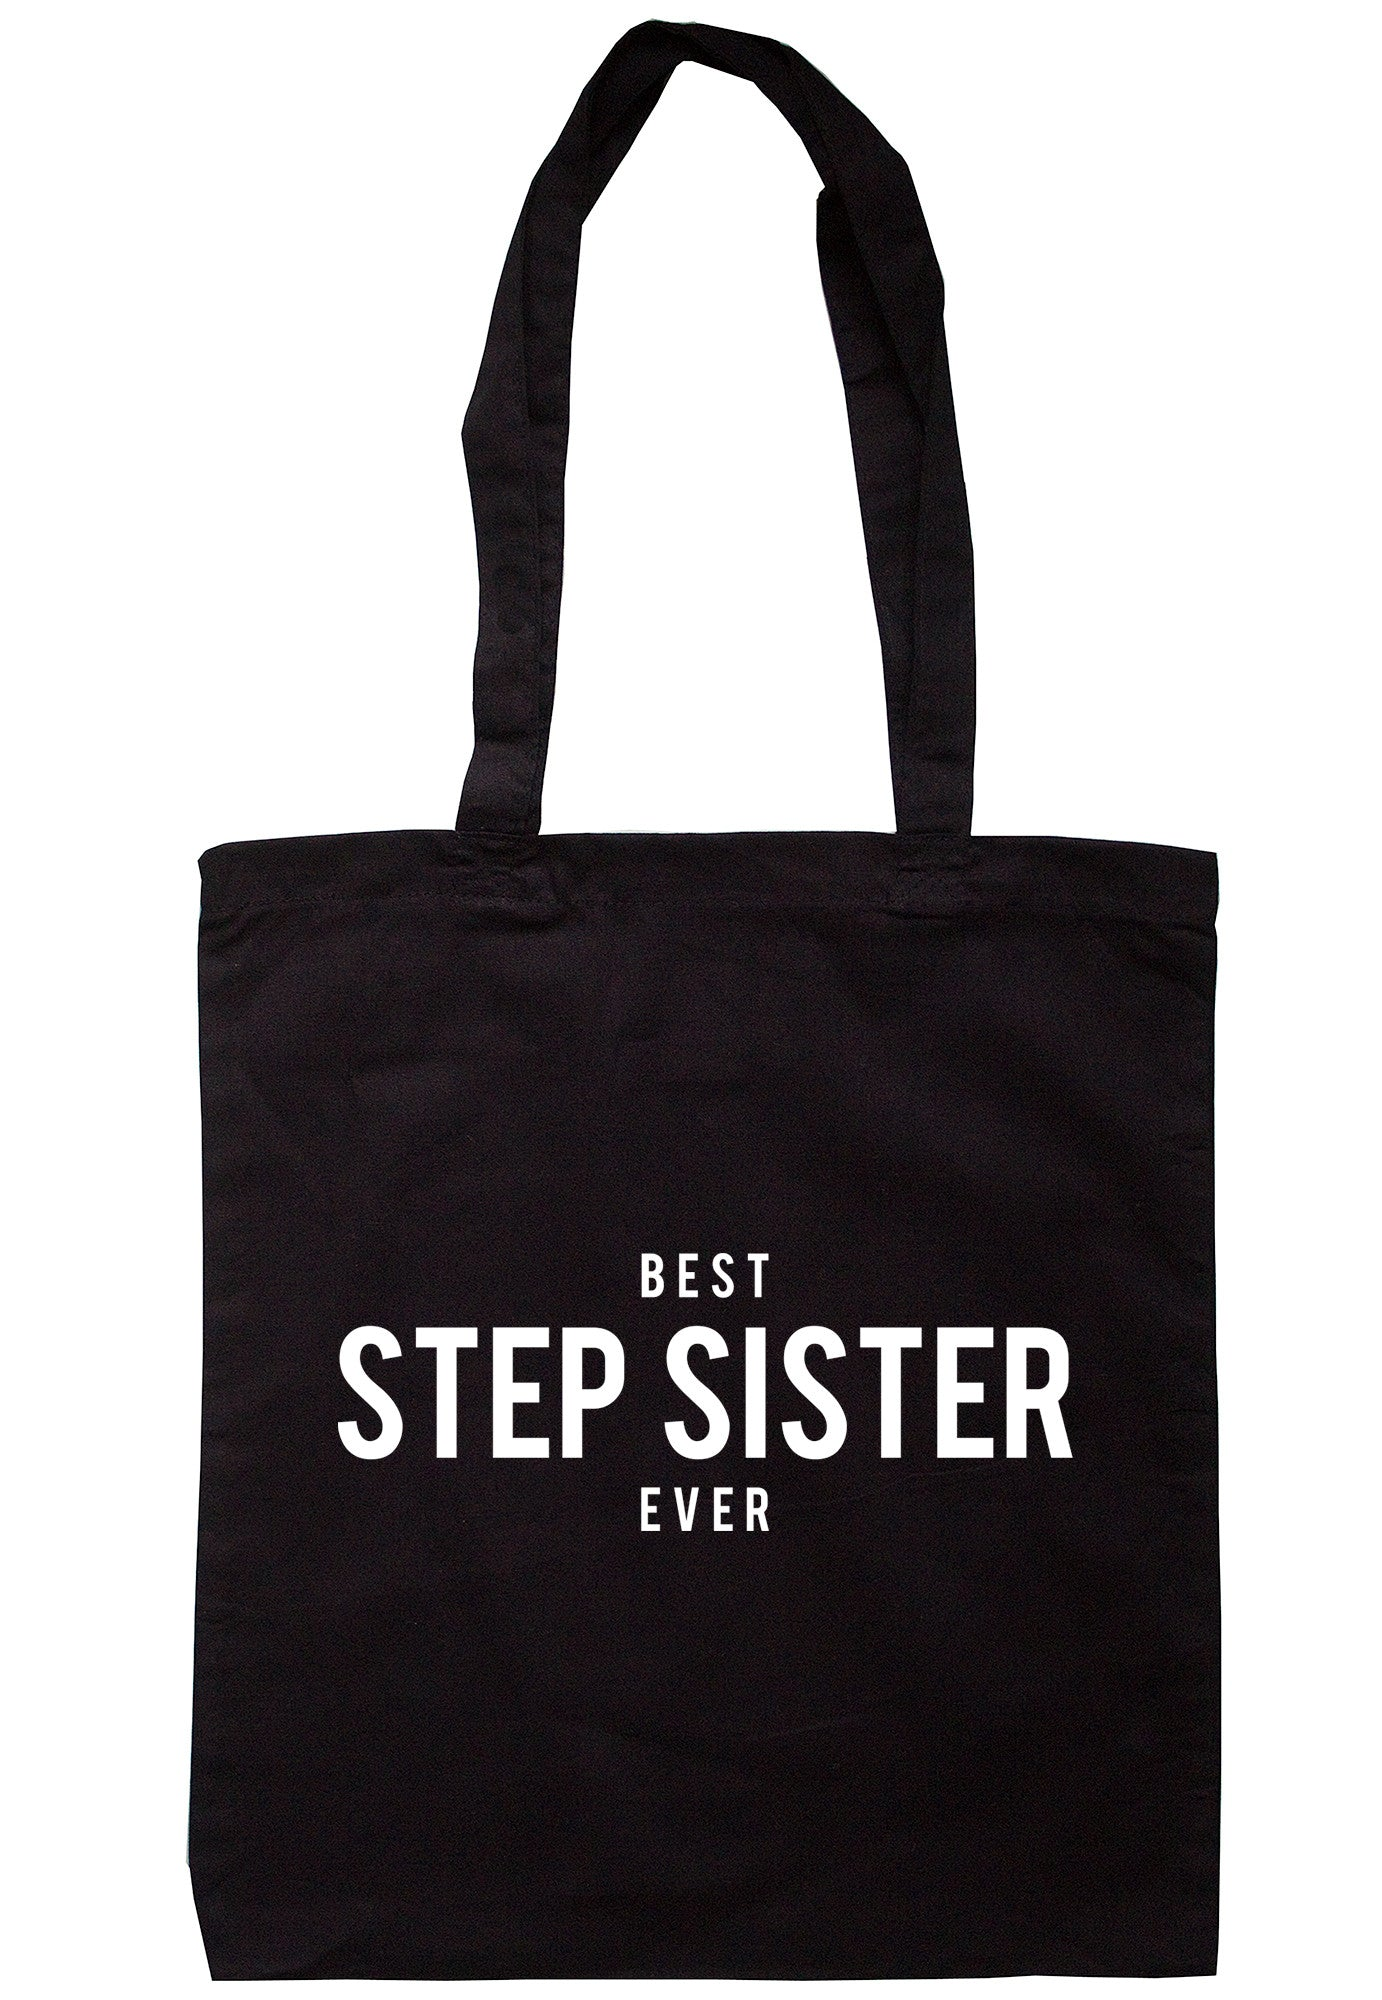 Best Step Sister Ever Tote Bag TB1255